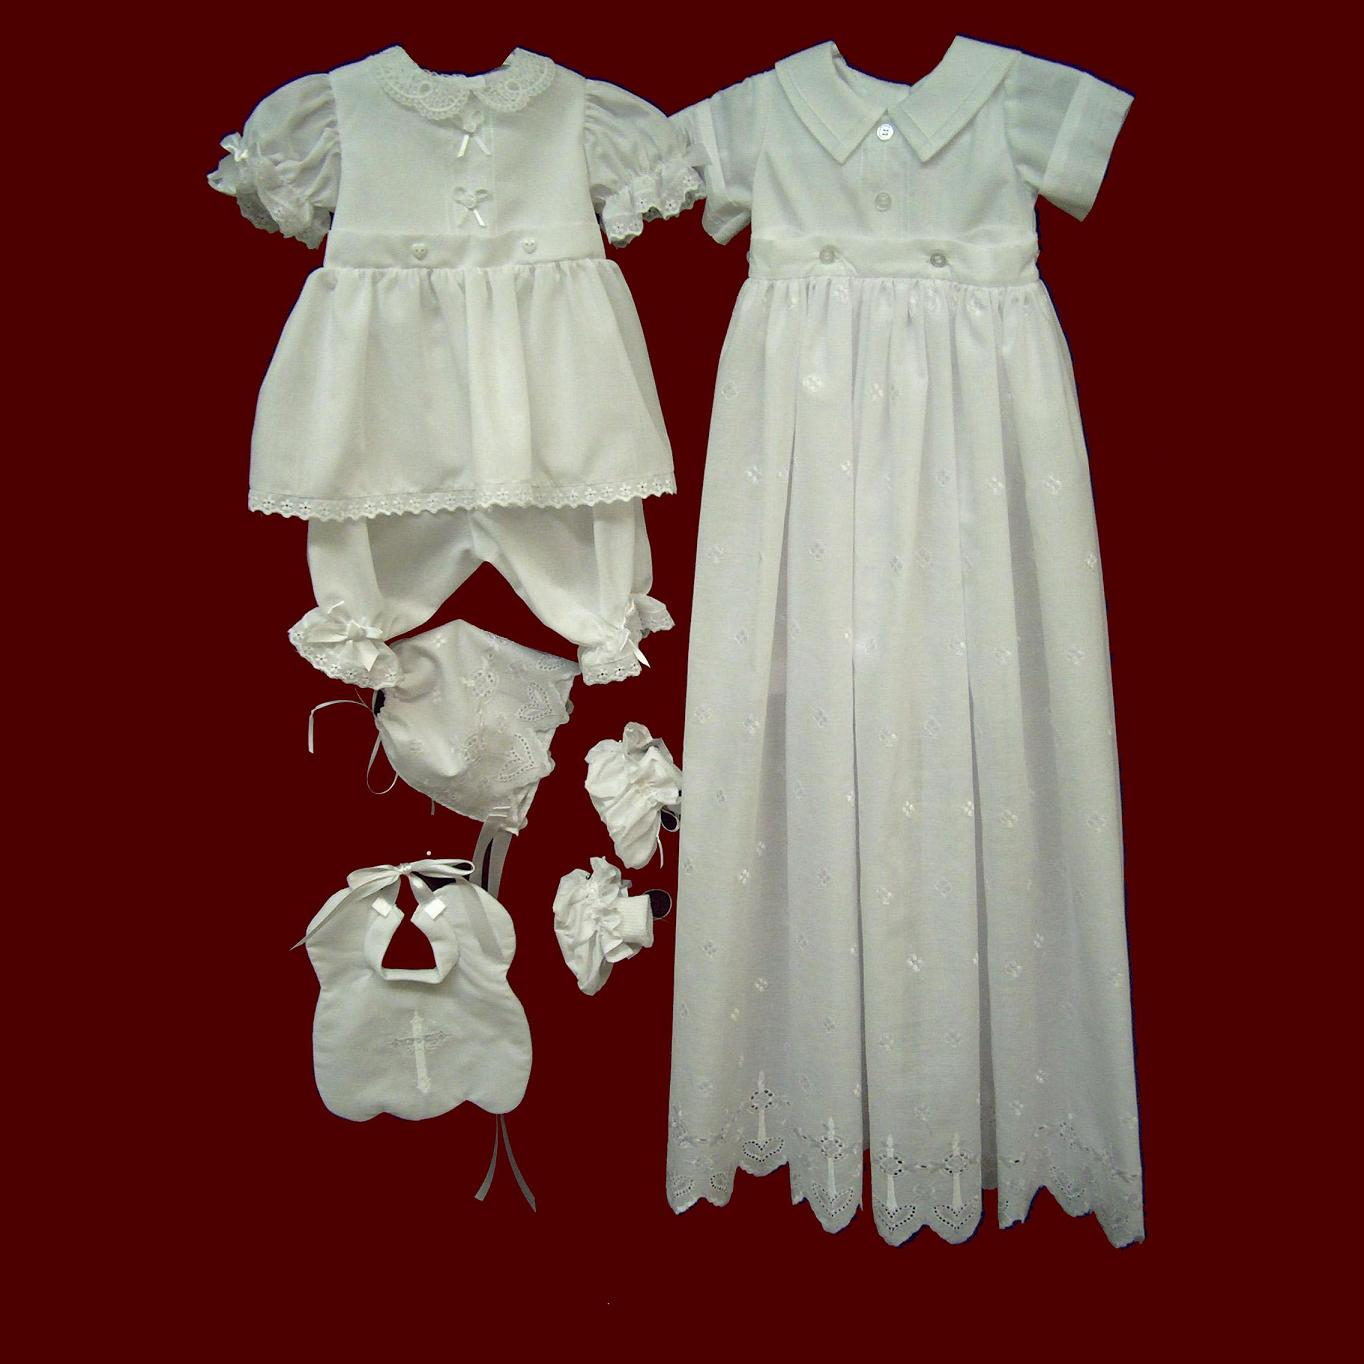 Boy and Girls Christening Ensemble with Detachable Gown and Cross Embroidered Bonnet